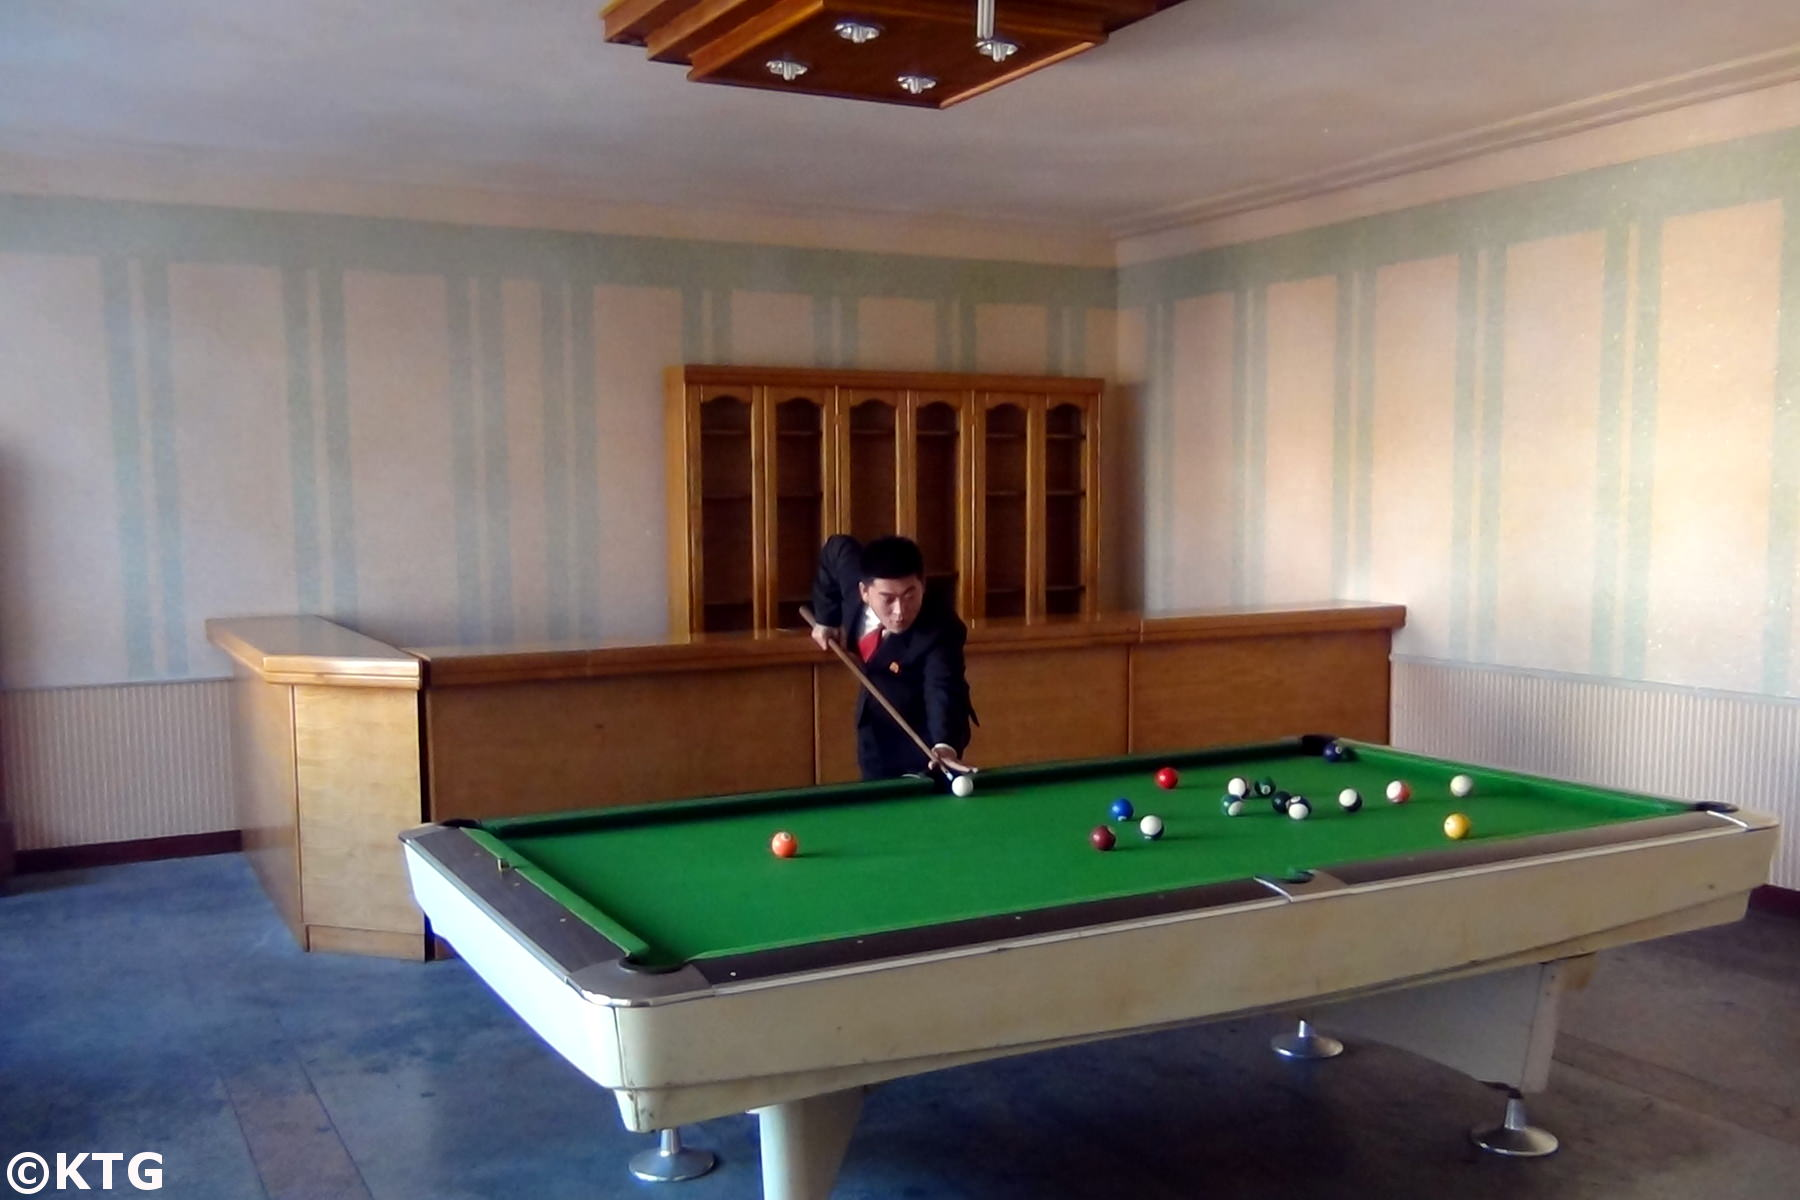 North Korean man playing pool at the Jangsusan Hotel in Pyongsong city, North Korea, DPRK